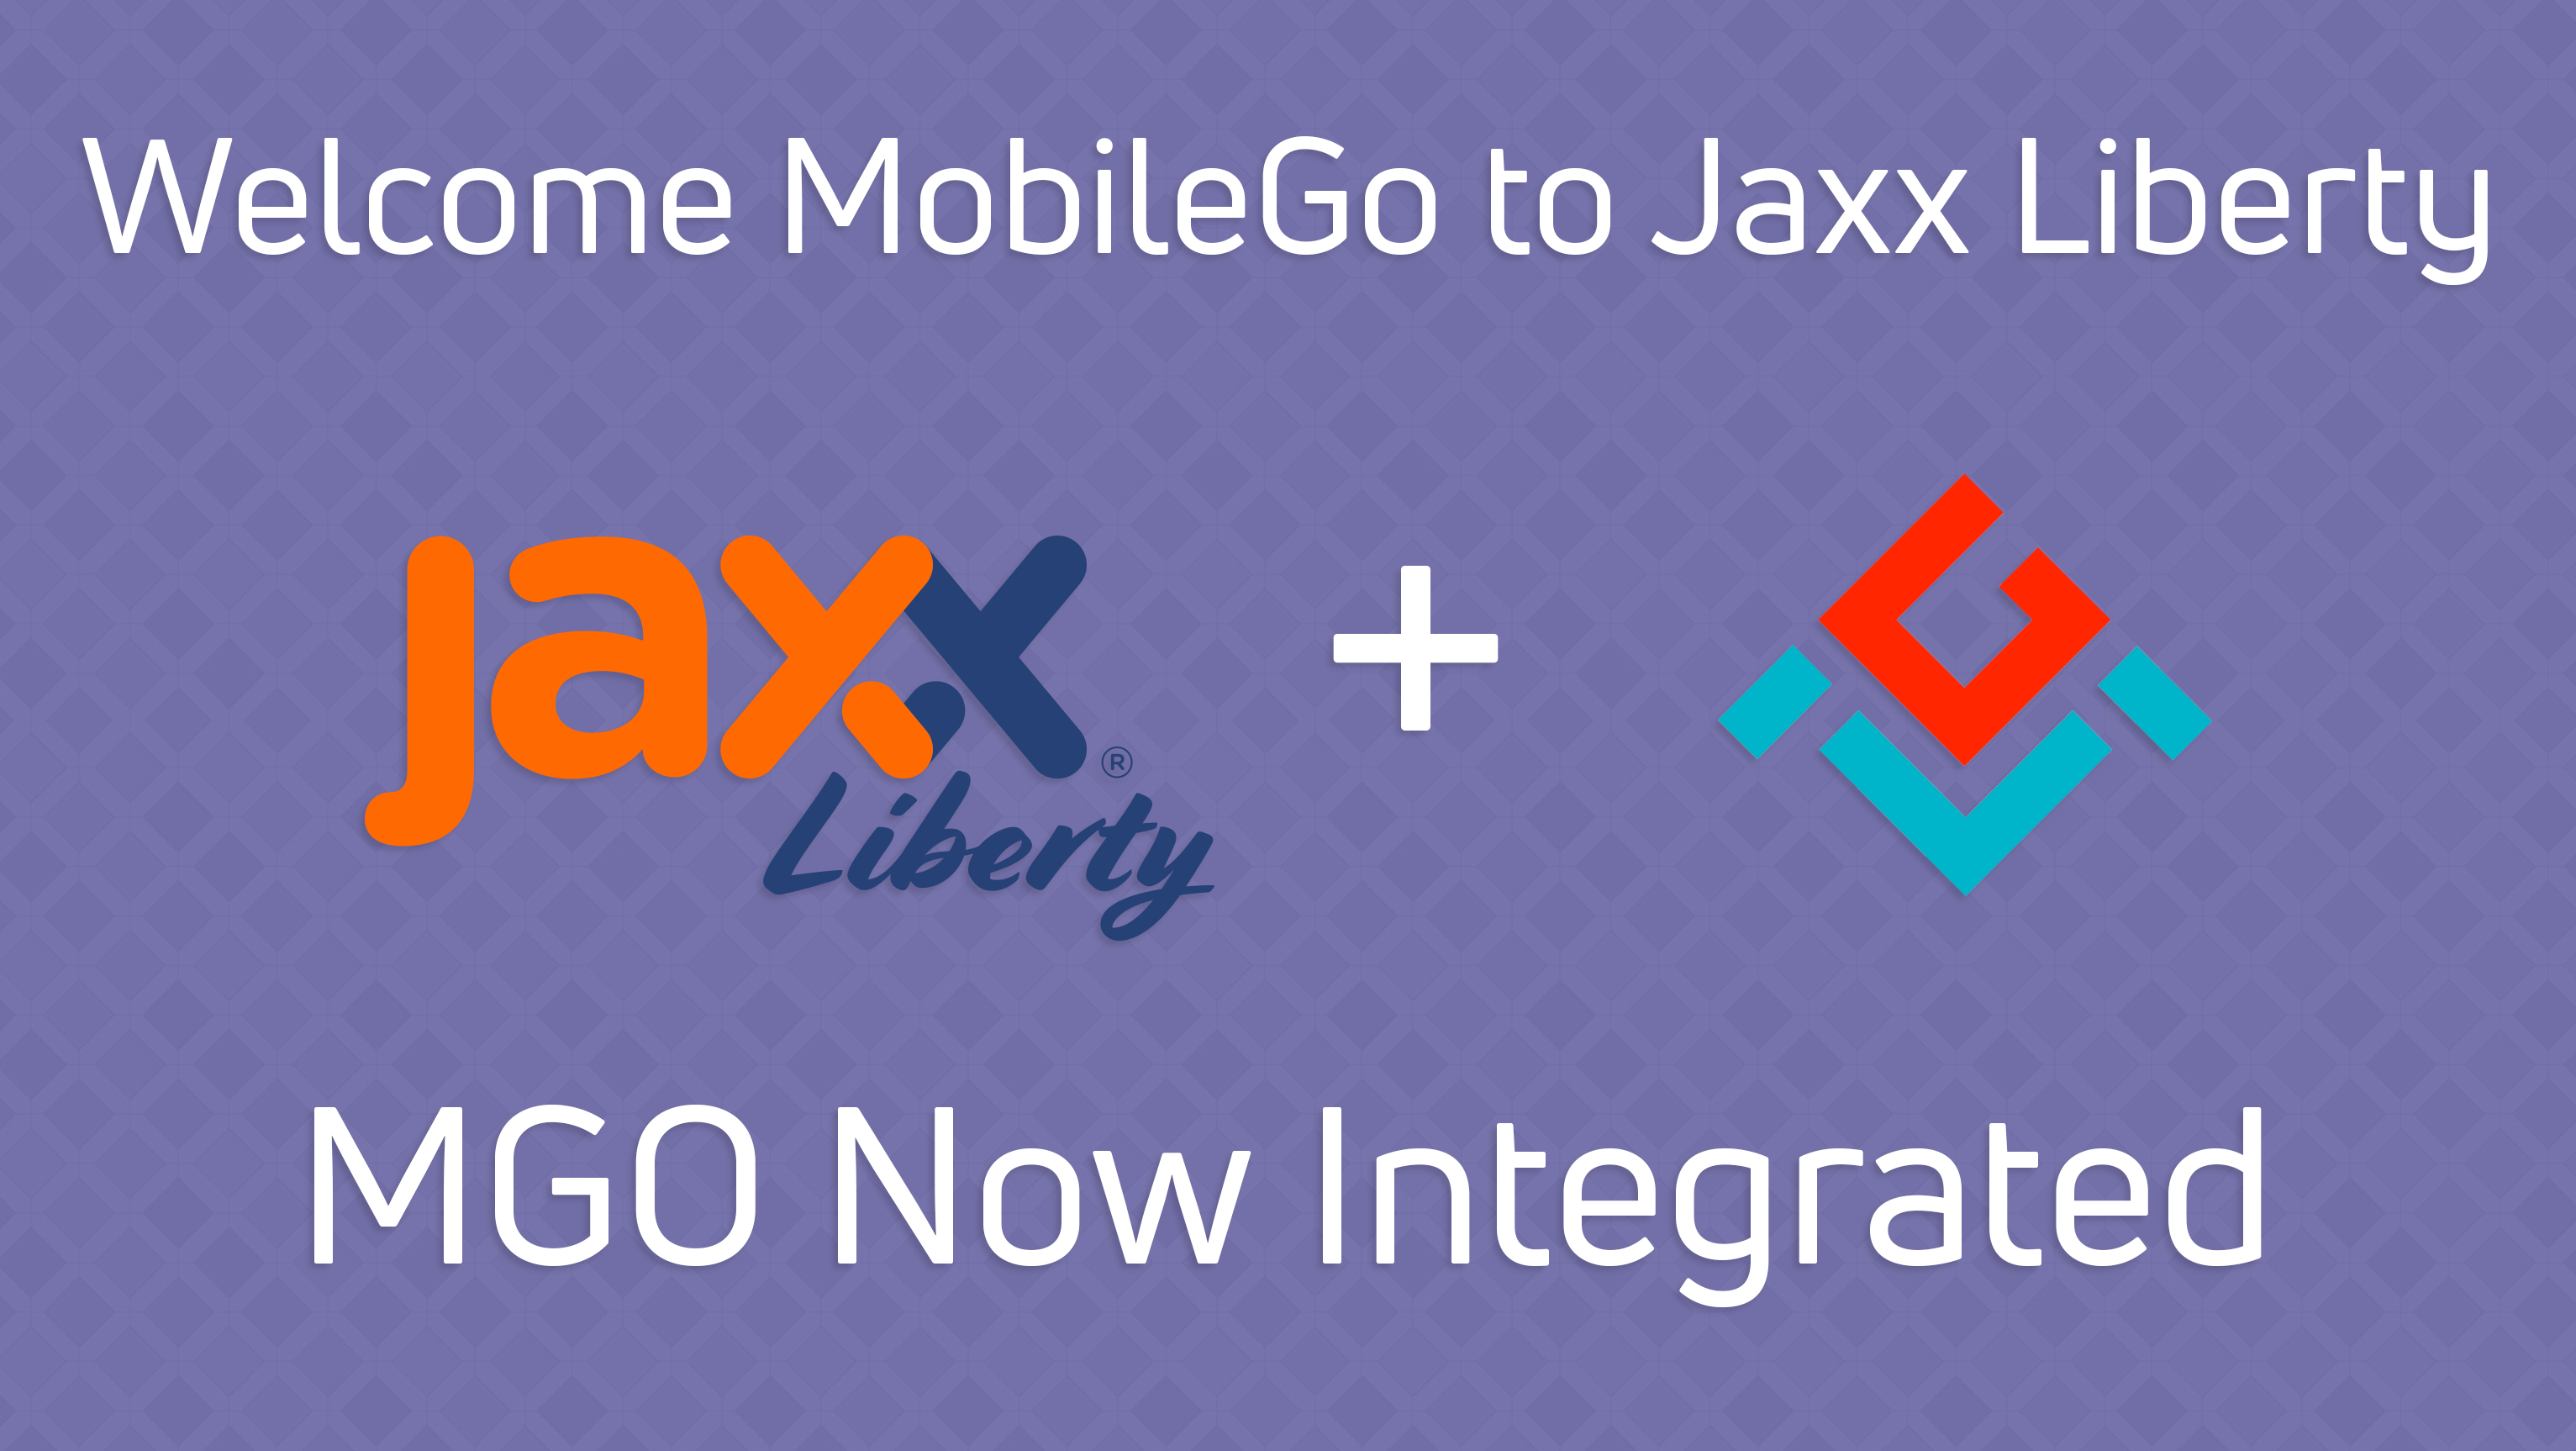 MobileGo integrated to Jaxx Liberty